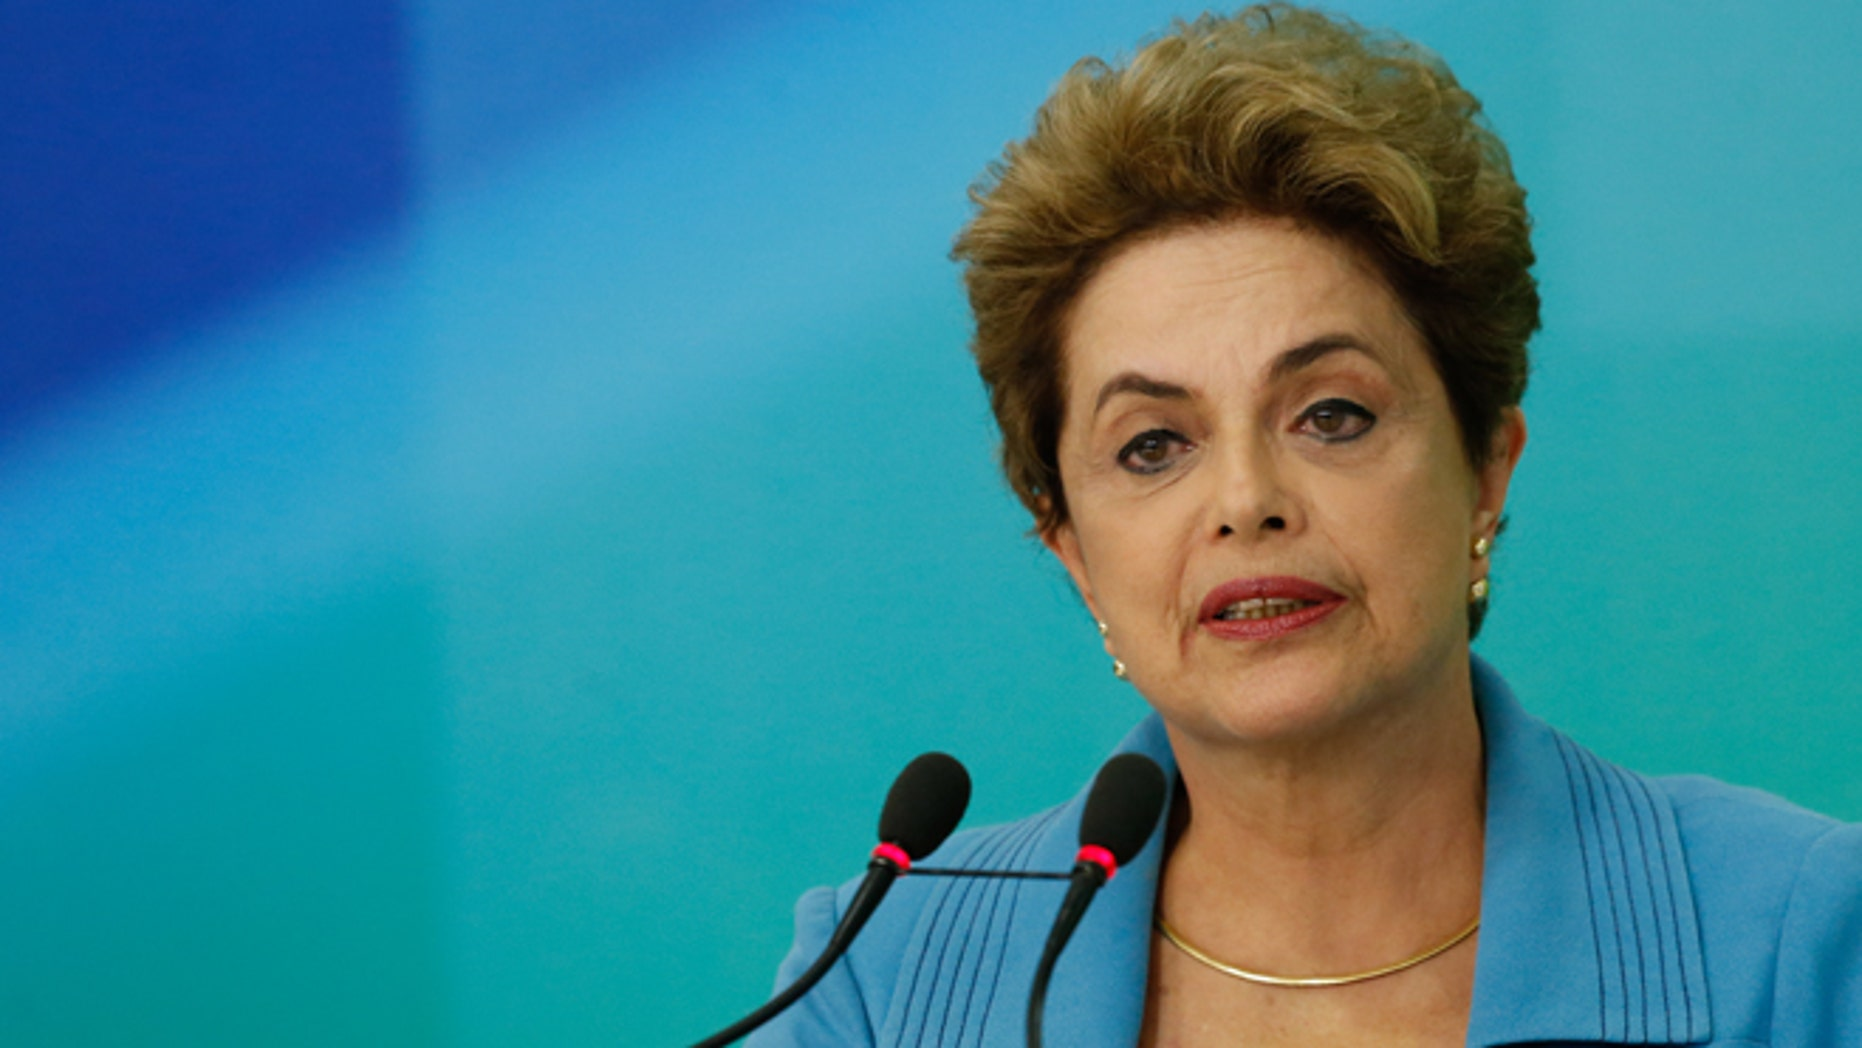 BRASILIA, BRAZIL - APRIL 18: President of Brazil Dilma Rousseff speaks at a press conference April 18, 2016 in Brasilia, Brazil. The lower house of Congress voted for a motion to impeach Rousseff and the process now moves to the Senate for a vote. (Photo by Igo Estrela/Getty Images)